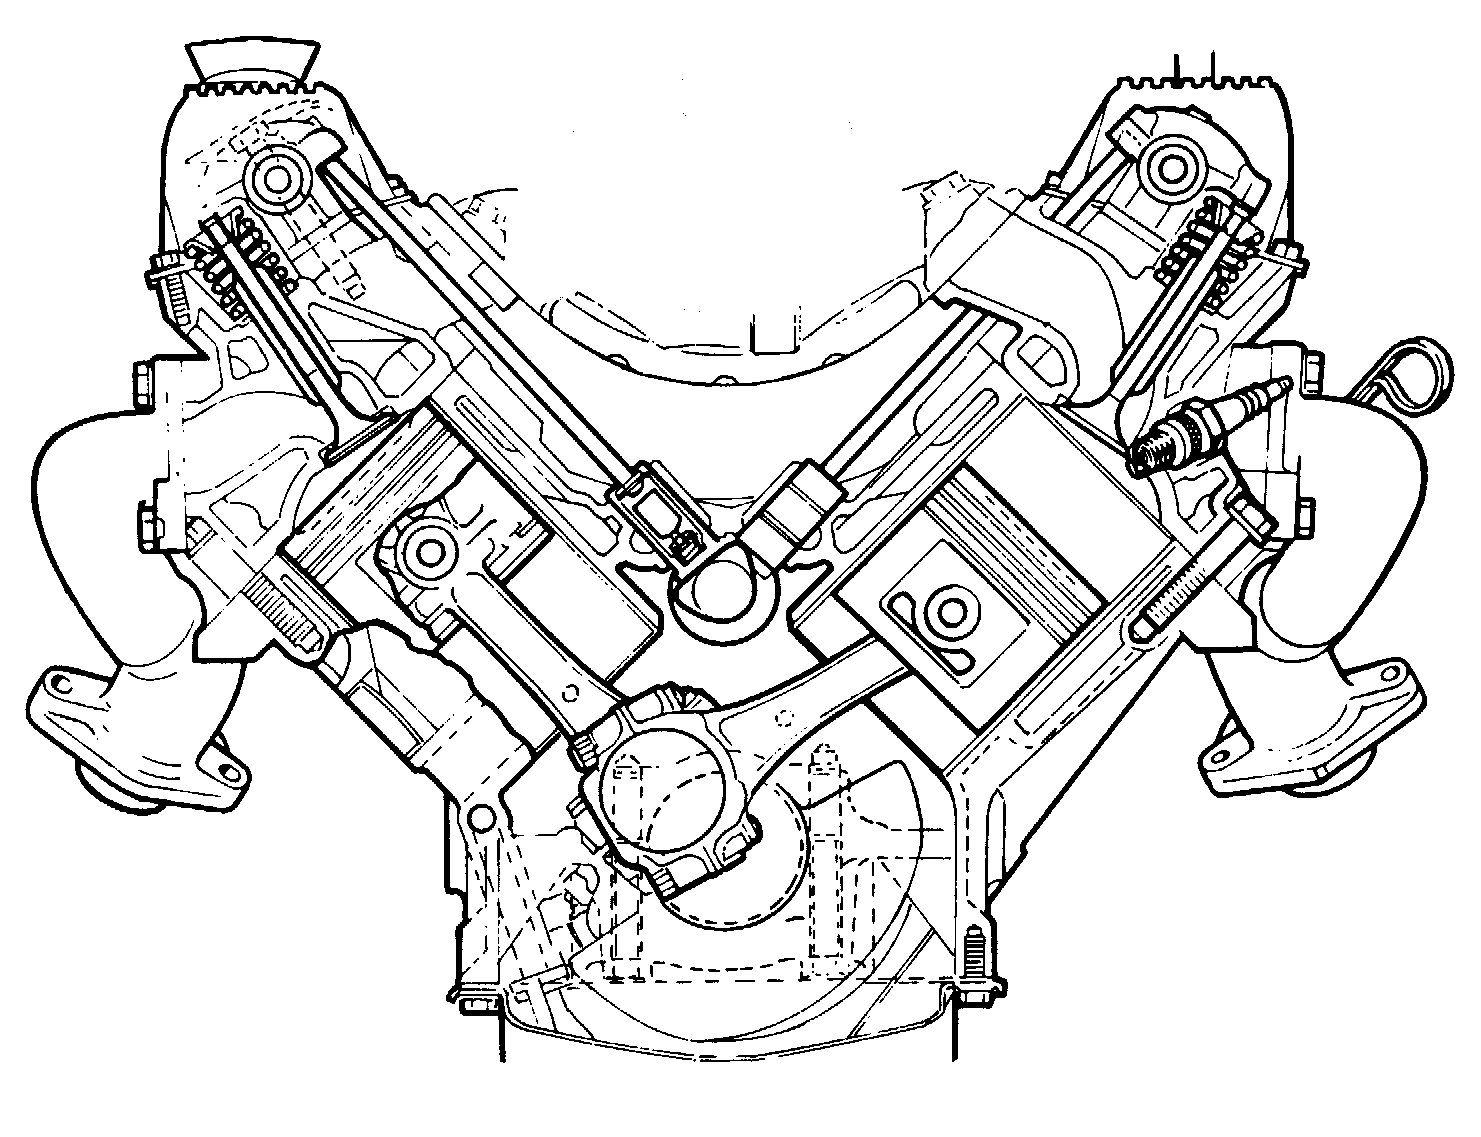 V8 Engine Exploded View Diagram Car, V8, Free Engine Image